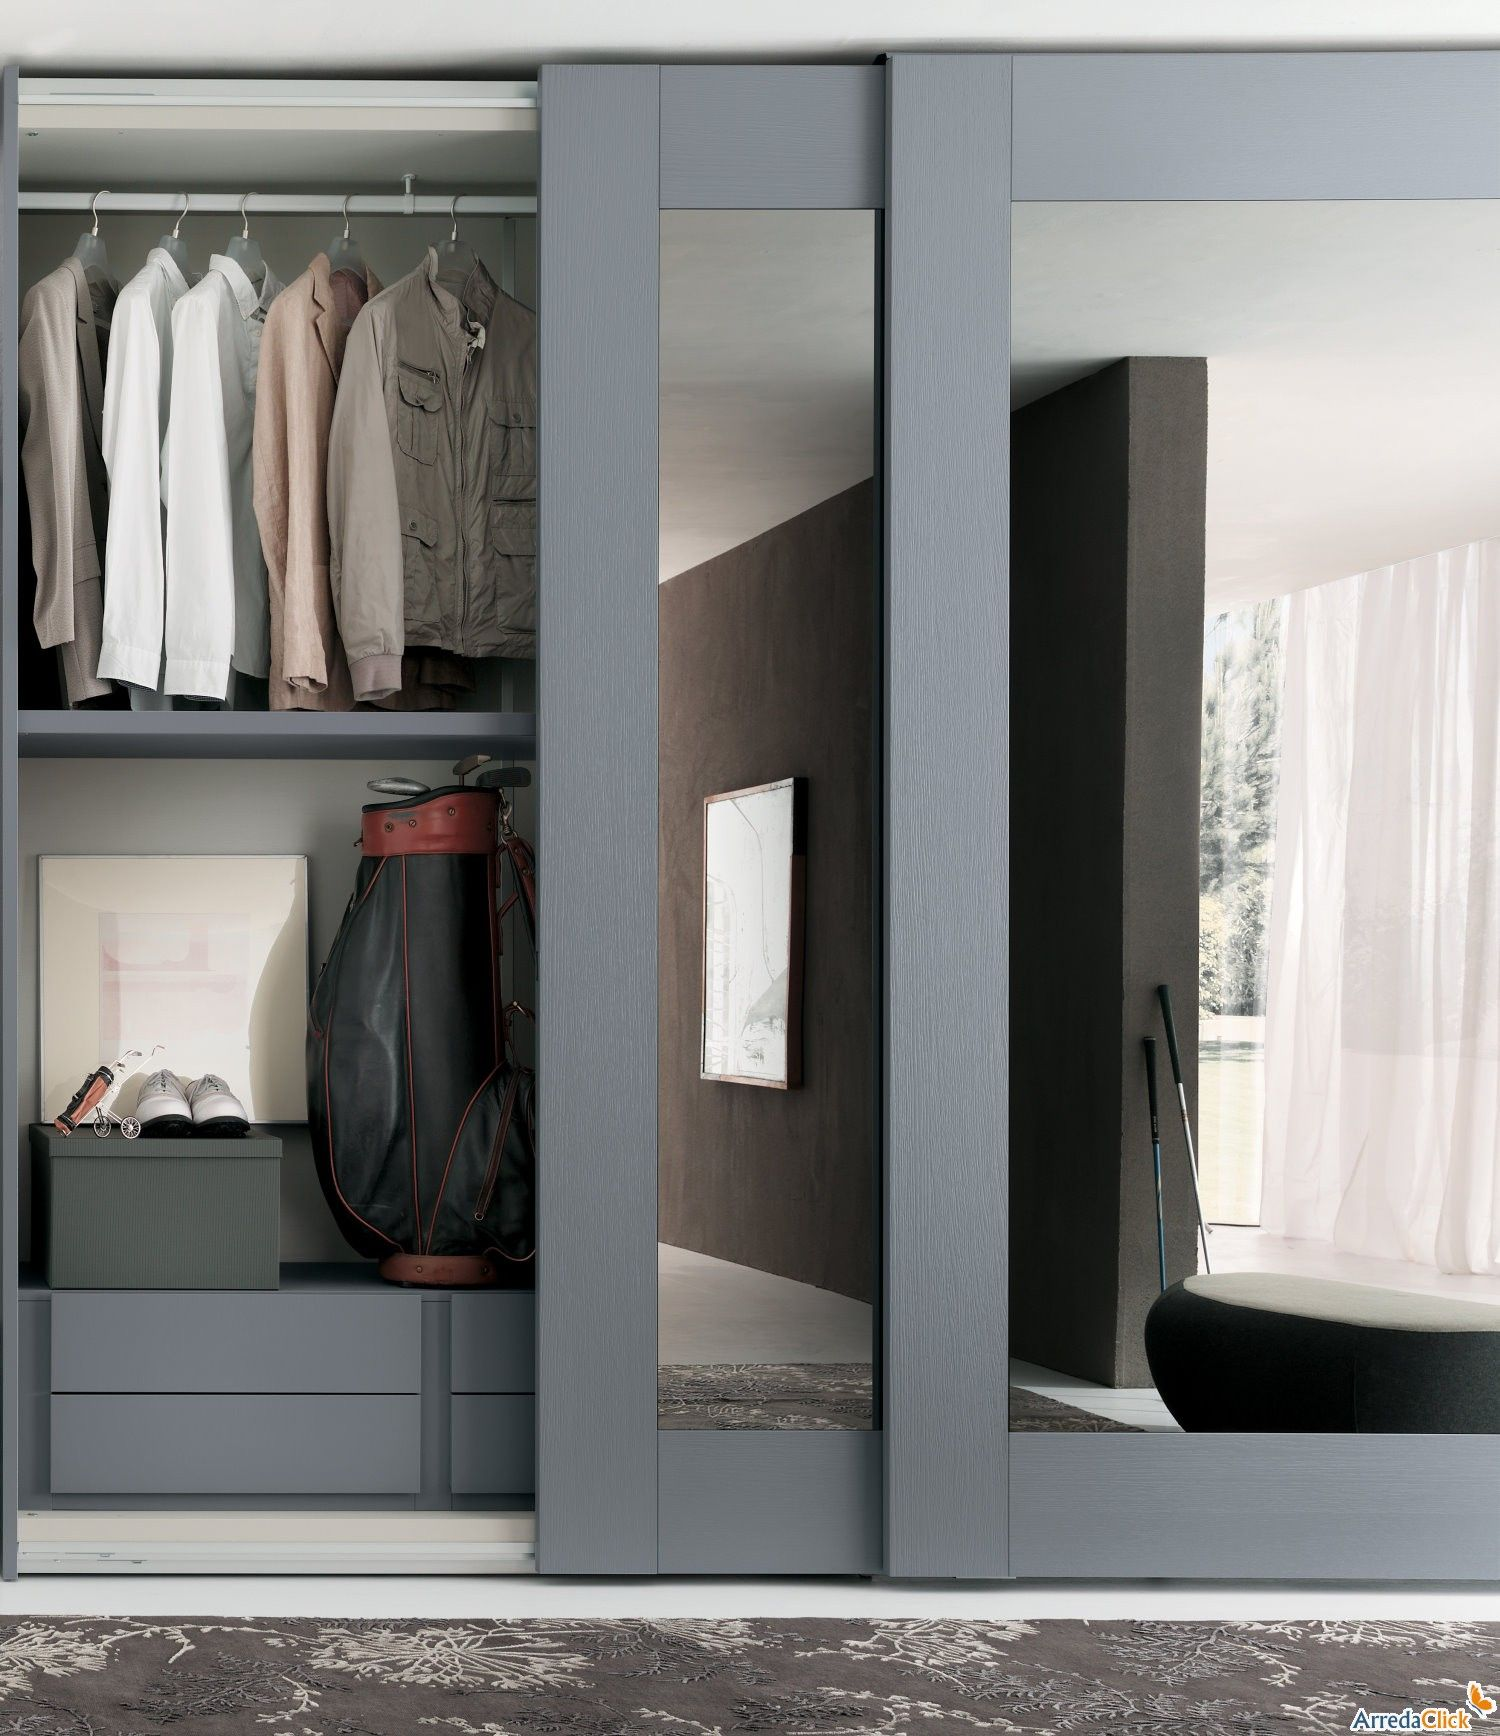 Create A New Look For Your Room With These Closet Door Ideas And Design Ikea Mirrored Sliding DoorsMirrored Wardrobe